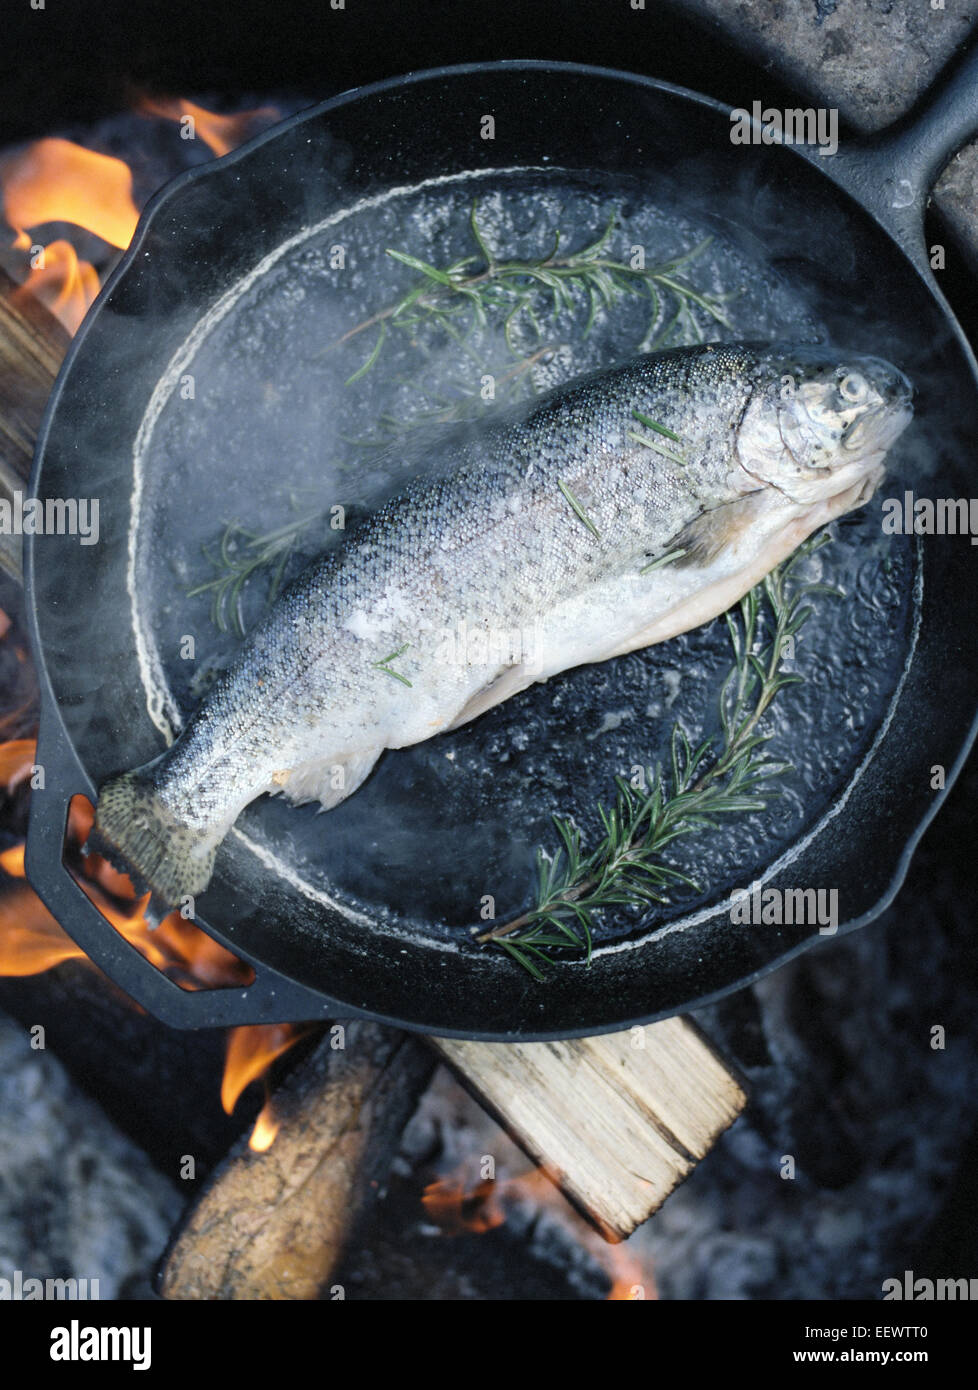 Fish in a frying pan over an outdoor fire. - Stock Image